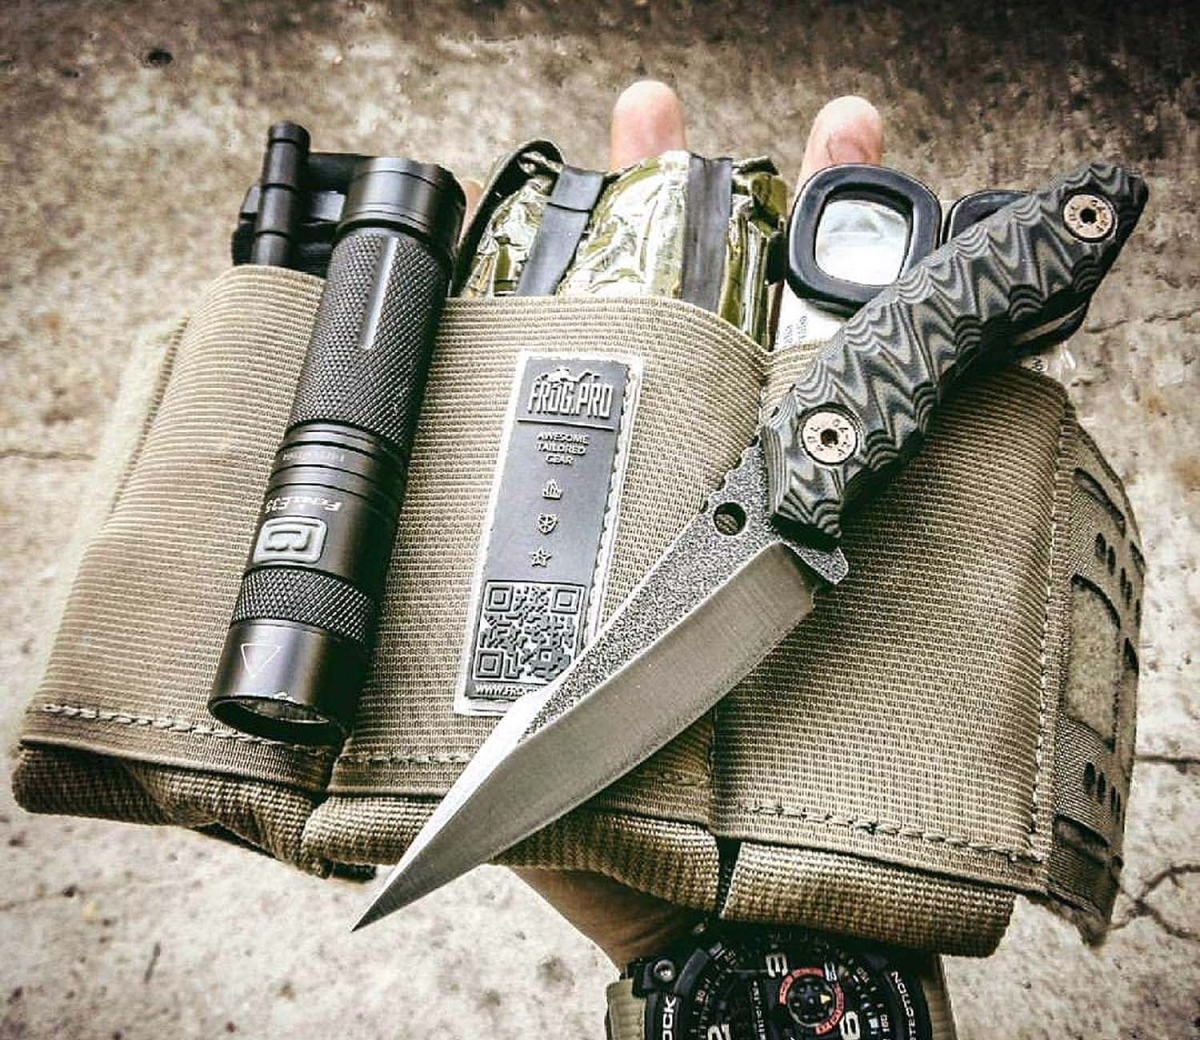 A GUNSweek.com global exclusive: a sneak peek on the prototype Wander Tactical Barracuda fighting knife!